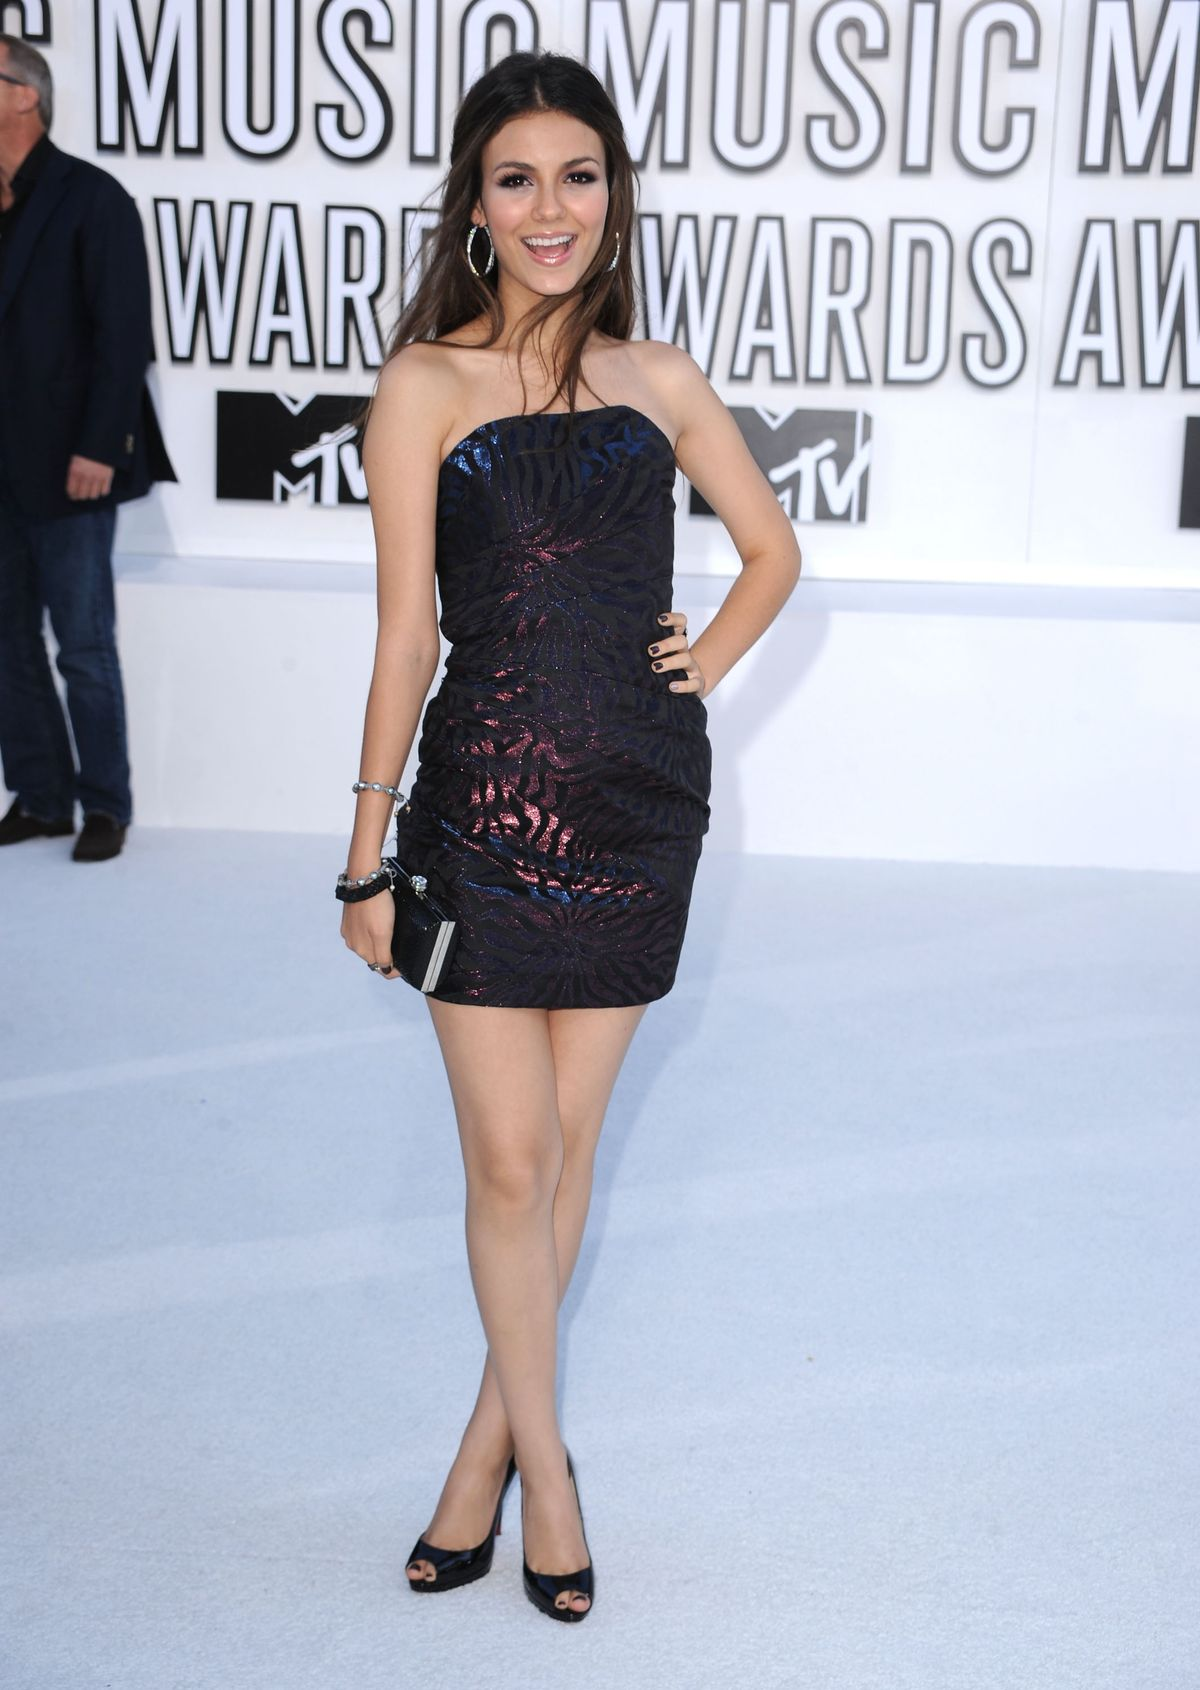 LOS ANGELES, CA - SEPTEMBER 12:  Actress Victoria Justice arrives at the 2010 MTV Video Music Awards held at Nokia Theatre L.A. Live on September 12, 2010 in Los Angeles, California.  (Photo by Steve Granitz/WireImage)